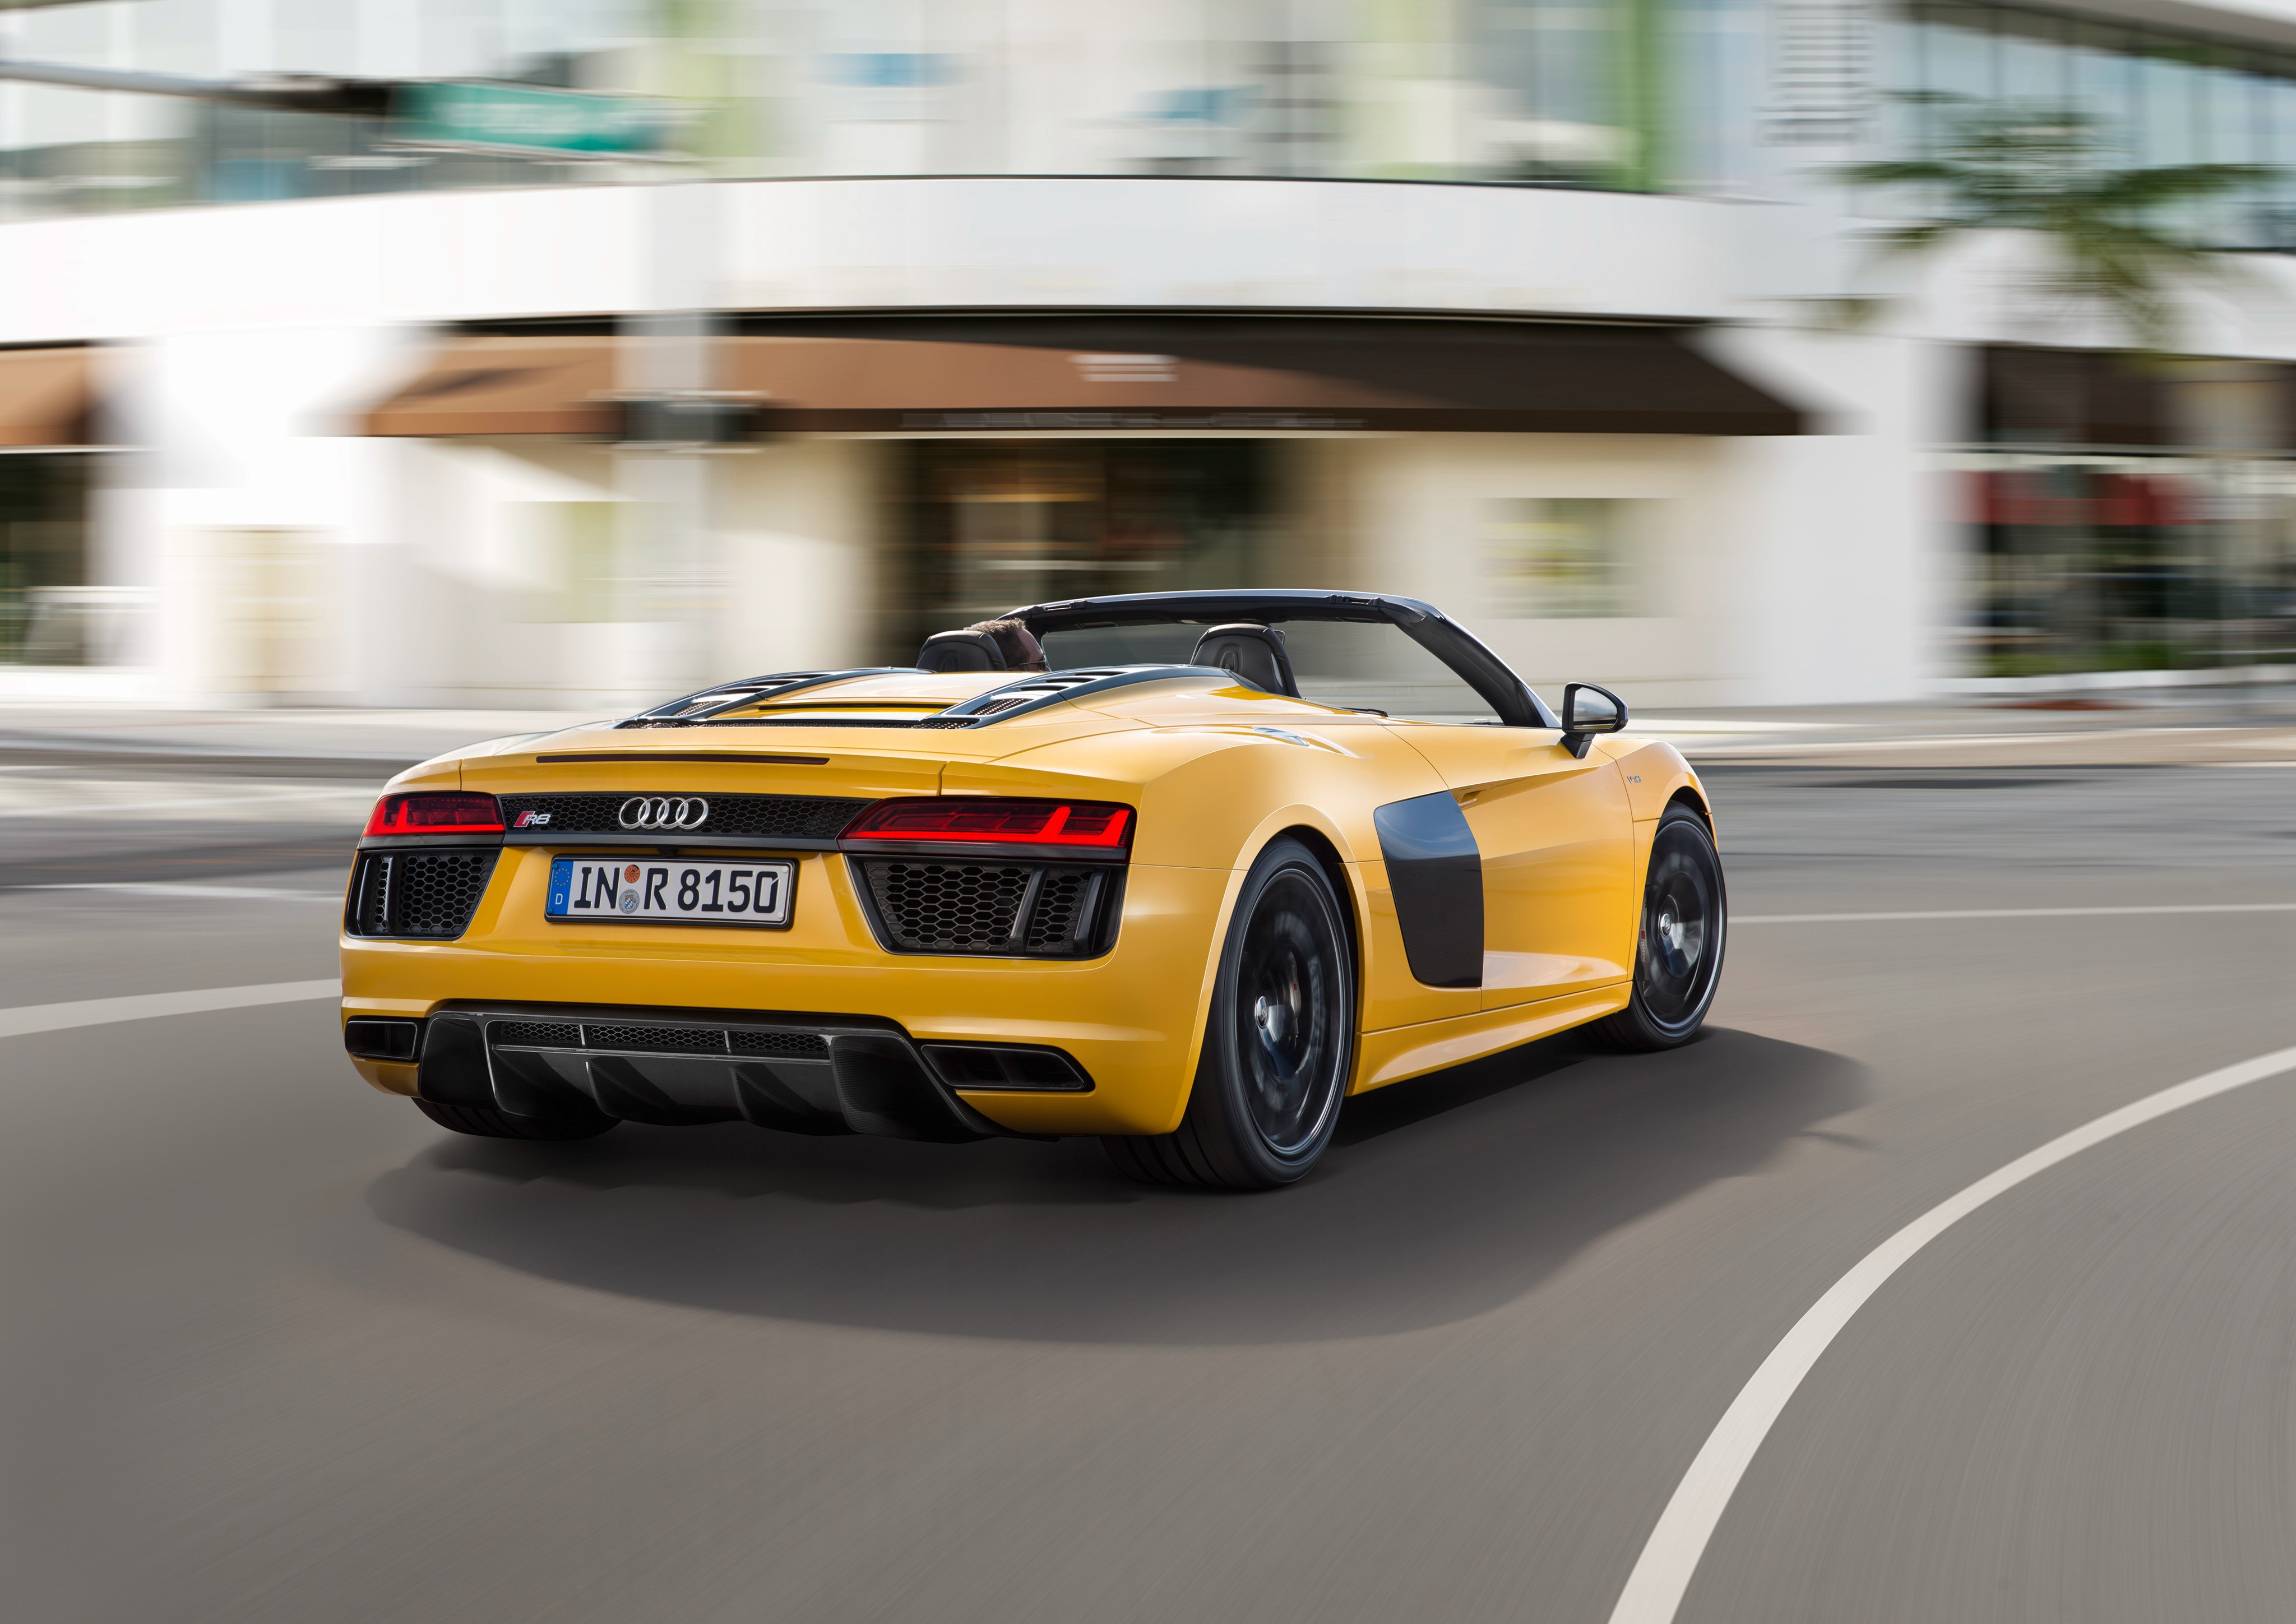 2017 Audi R8 Spyder Price Set From €179,000 In Germany